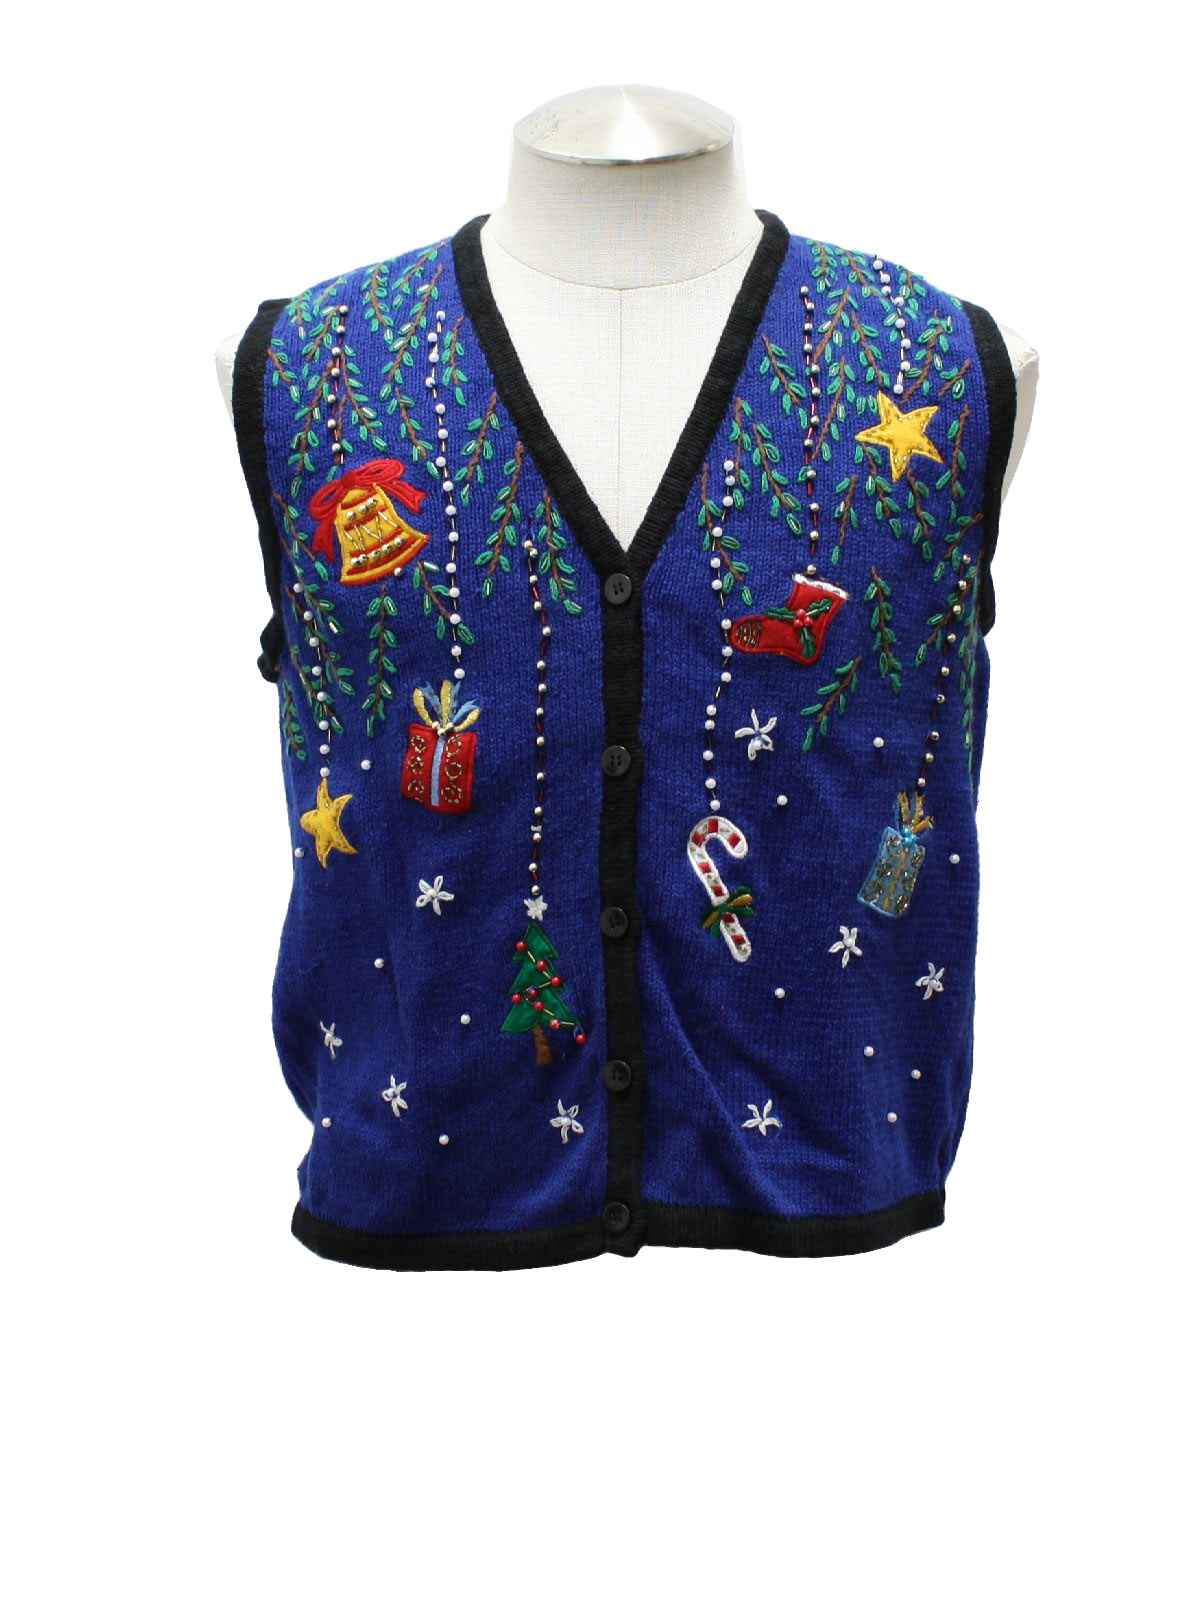 Blue Womens Sweater Vest 81